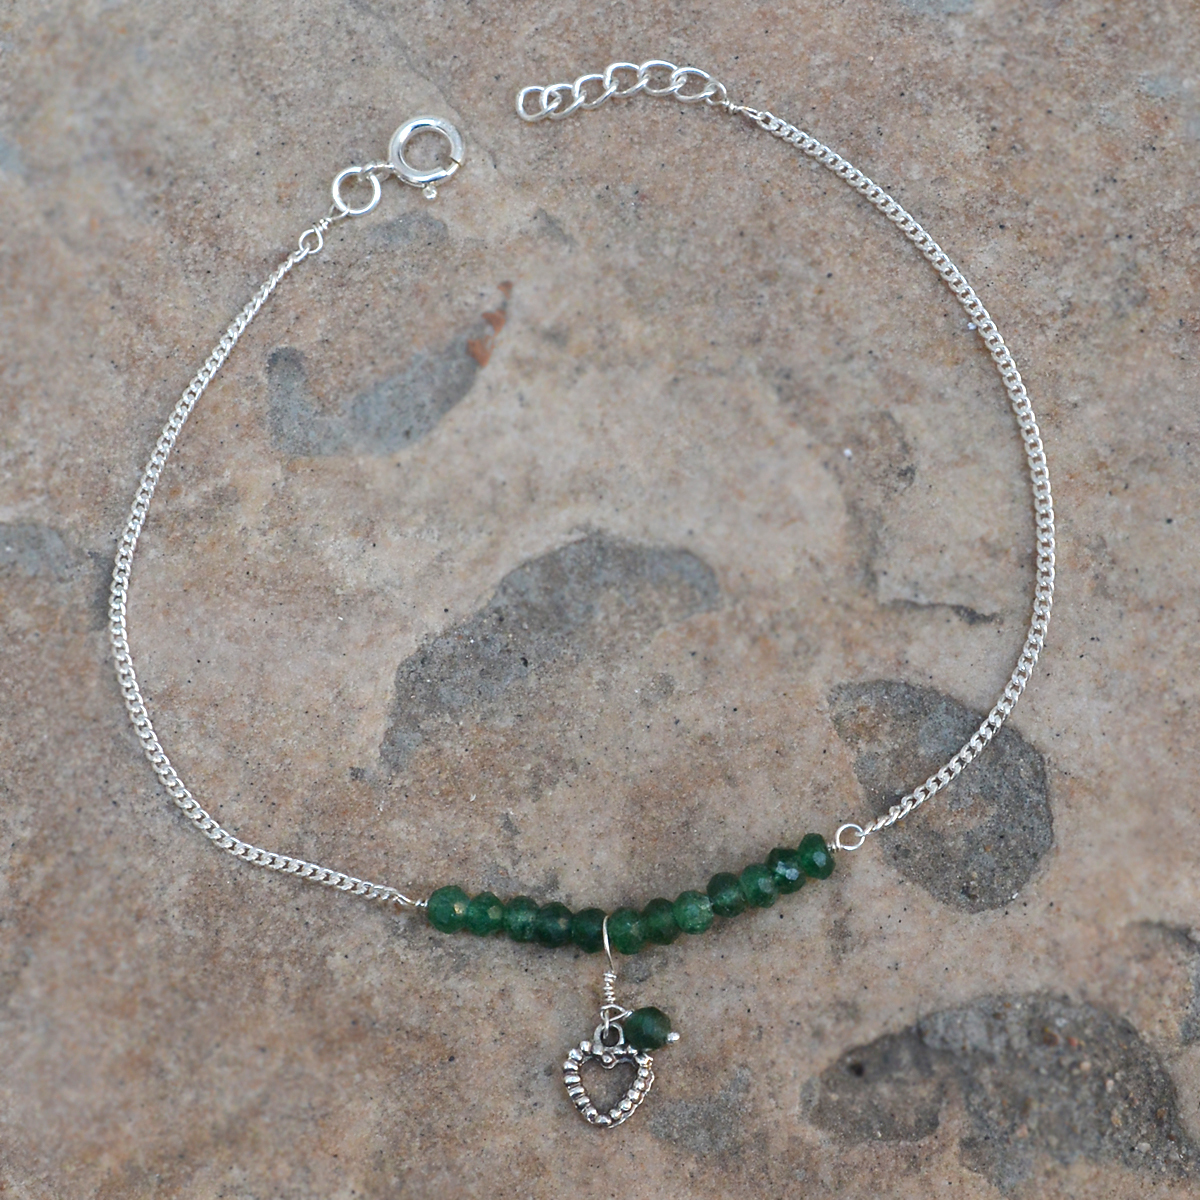 Green Aventurine Gemstone Jaipur Rajasthan India 925 Sterling Silver Single Piece Anklet Handmade Jewelry Manufacturer